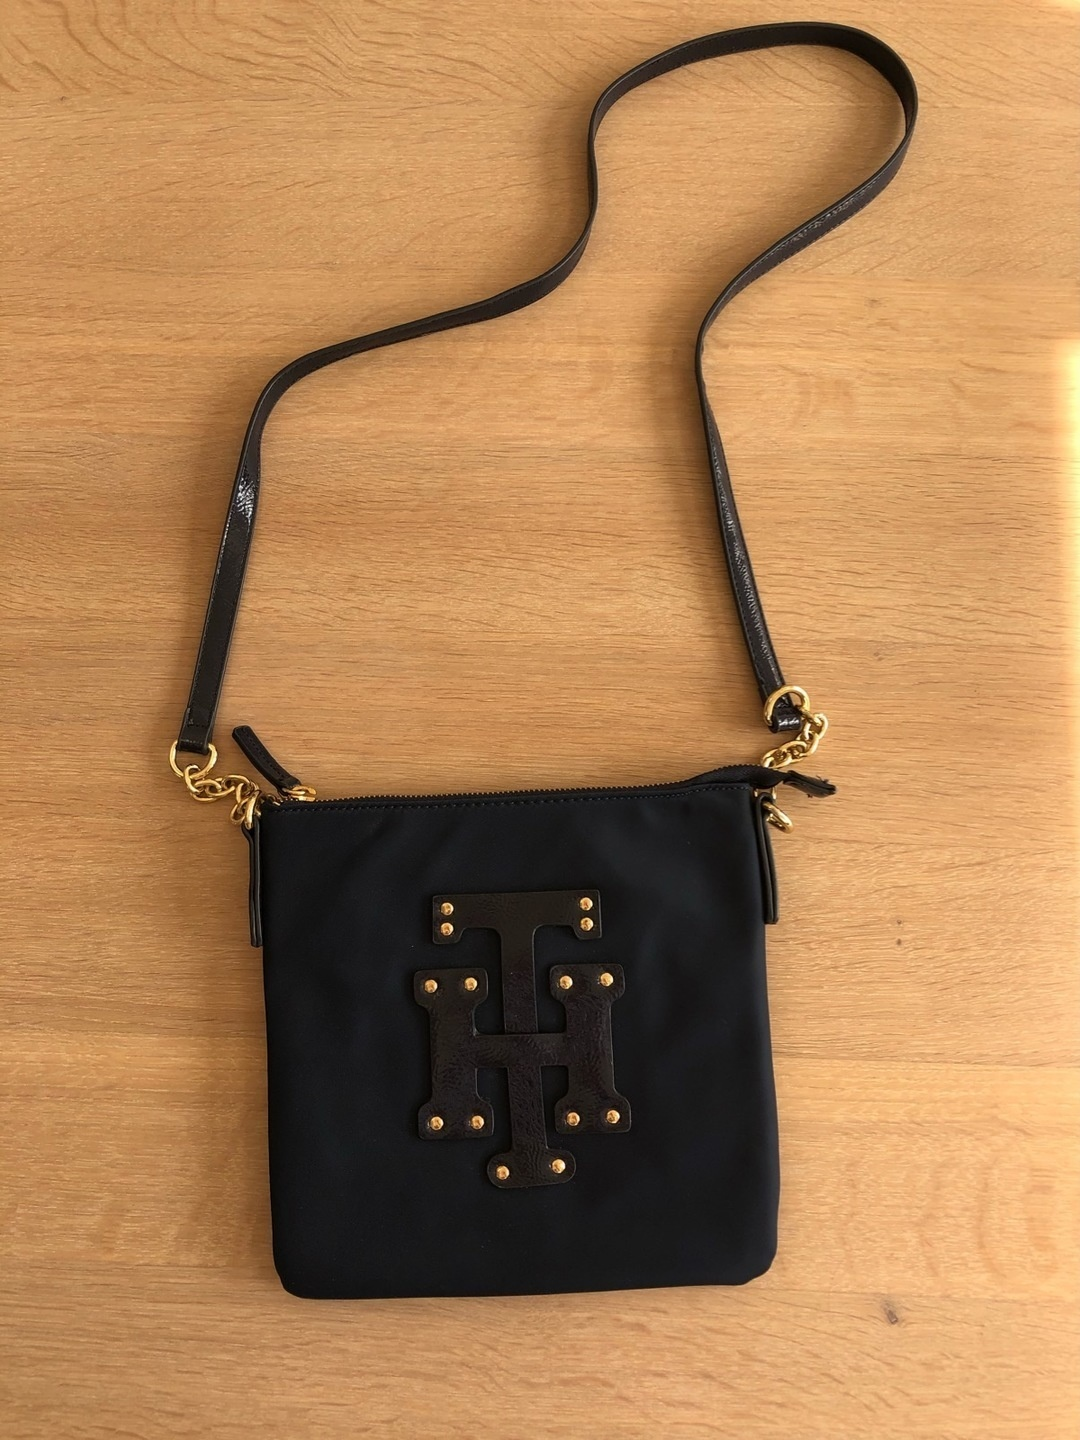 Women's bags & purses - TOMMY HILFIGER photo 1